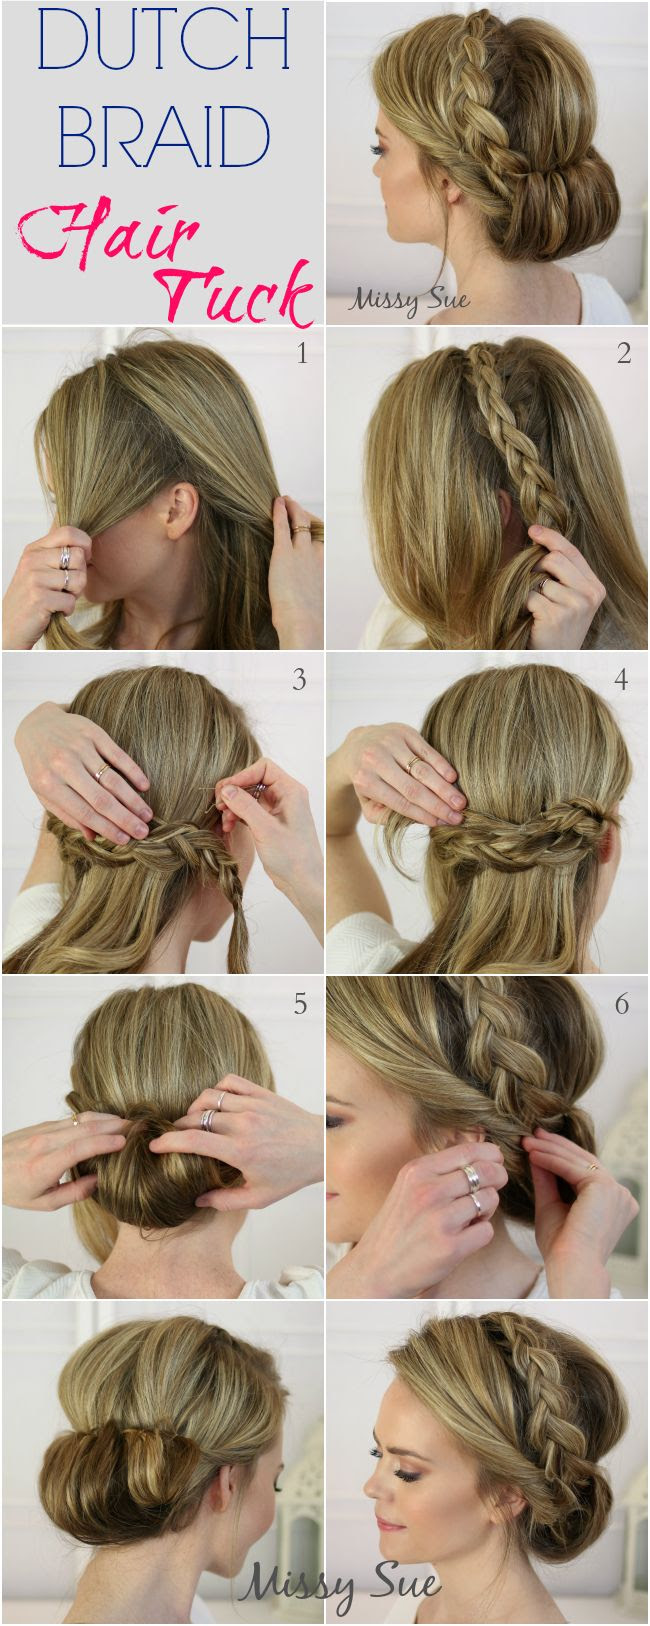 Classy Cathleen 50 Hairstyles And Tips That Every Girl Should Know